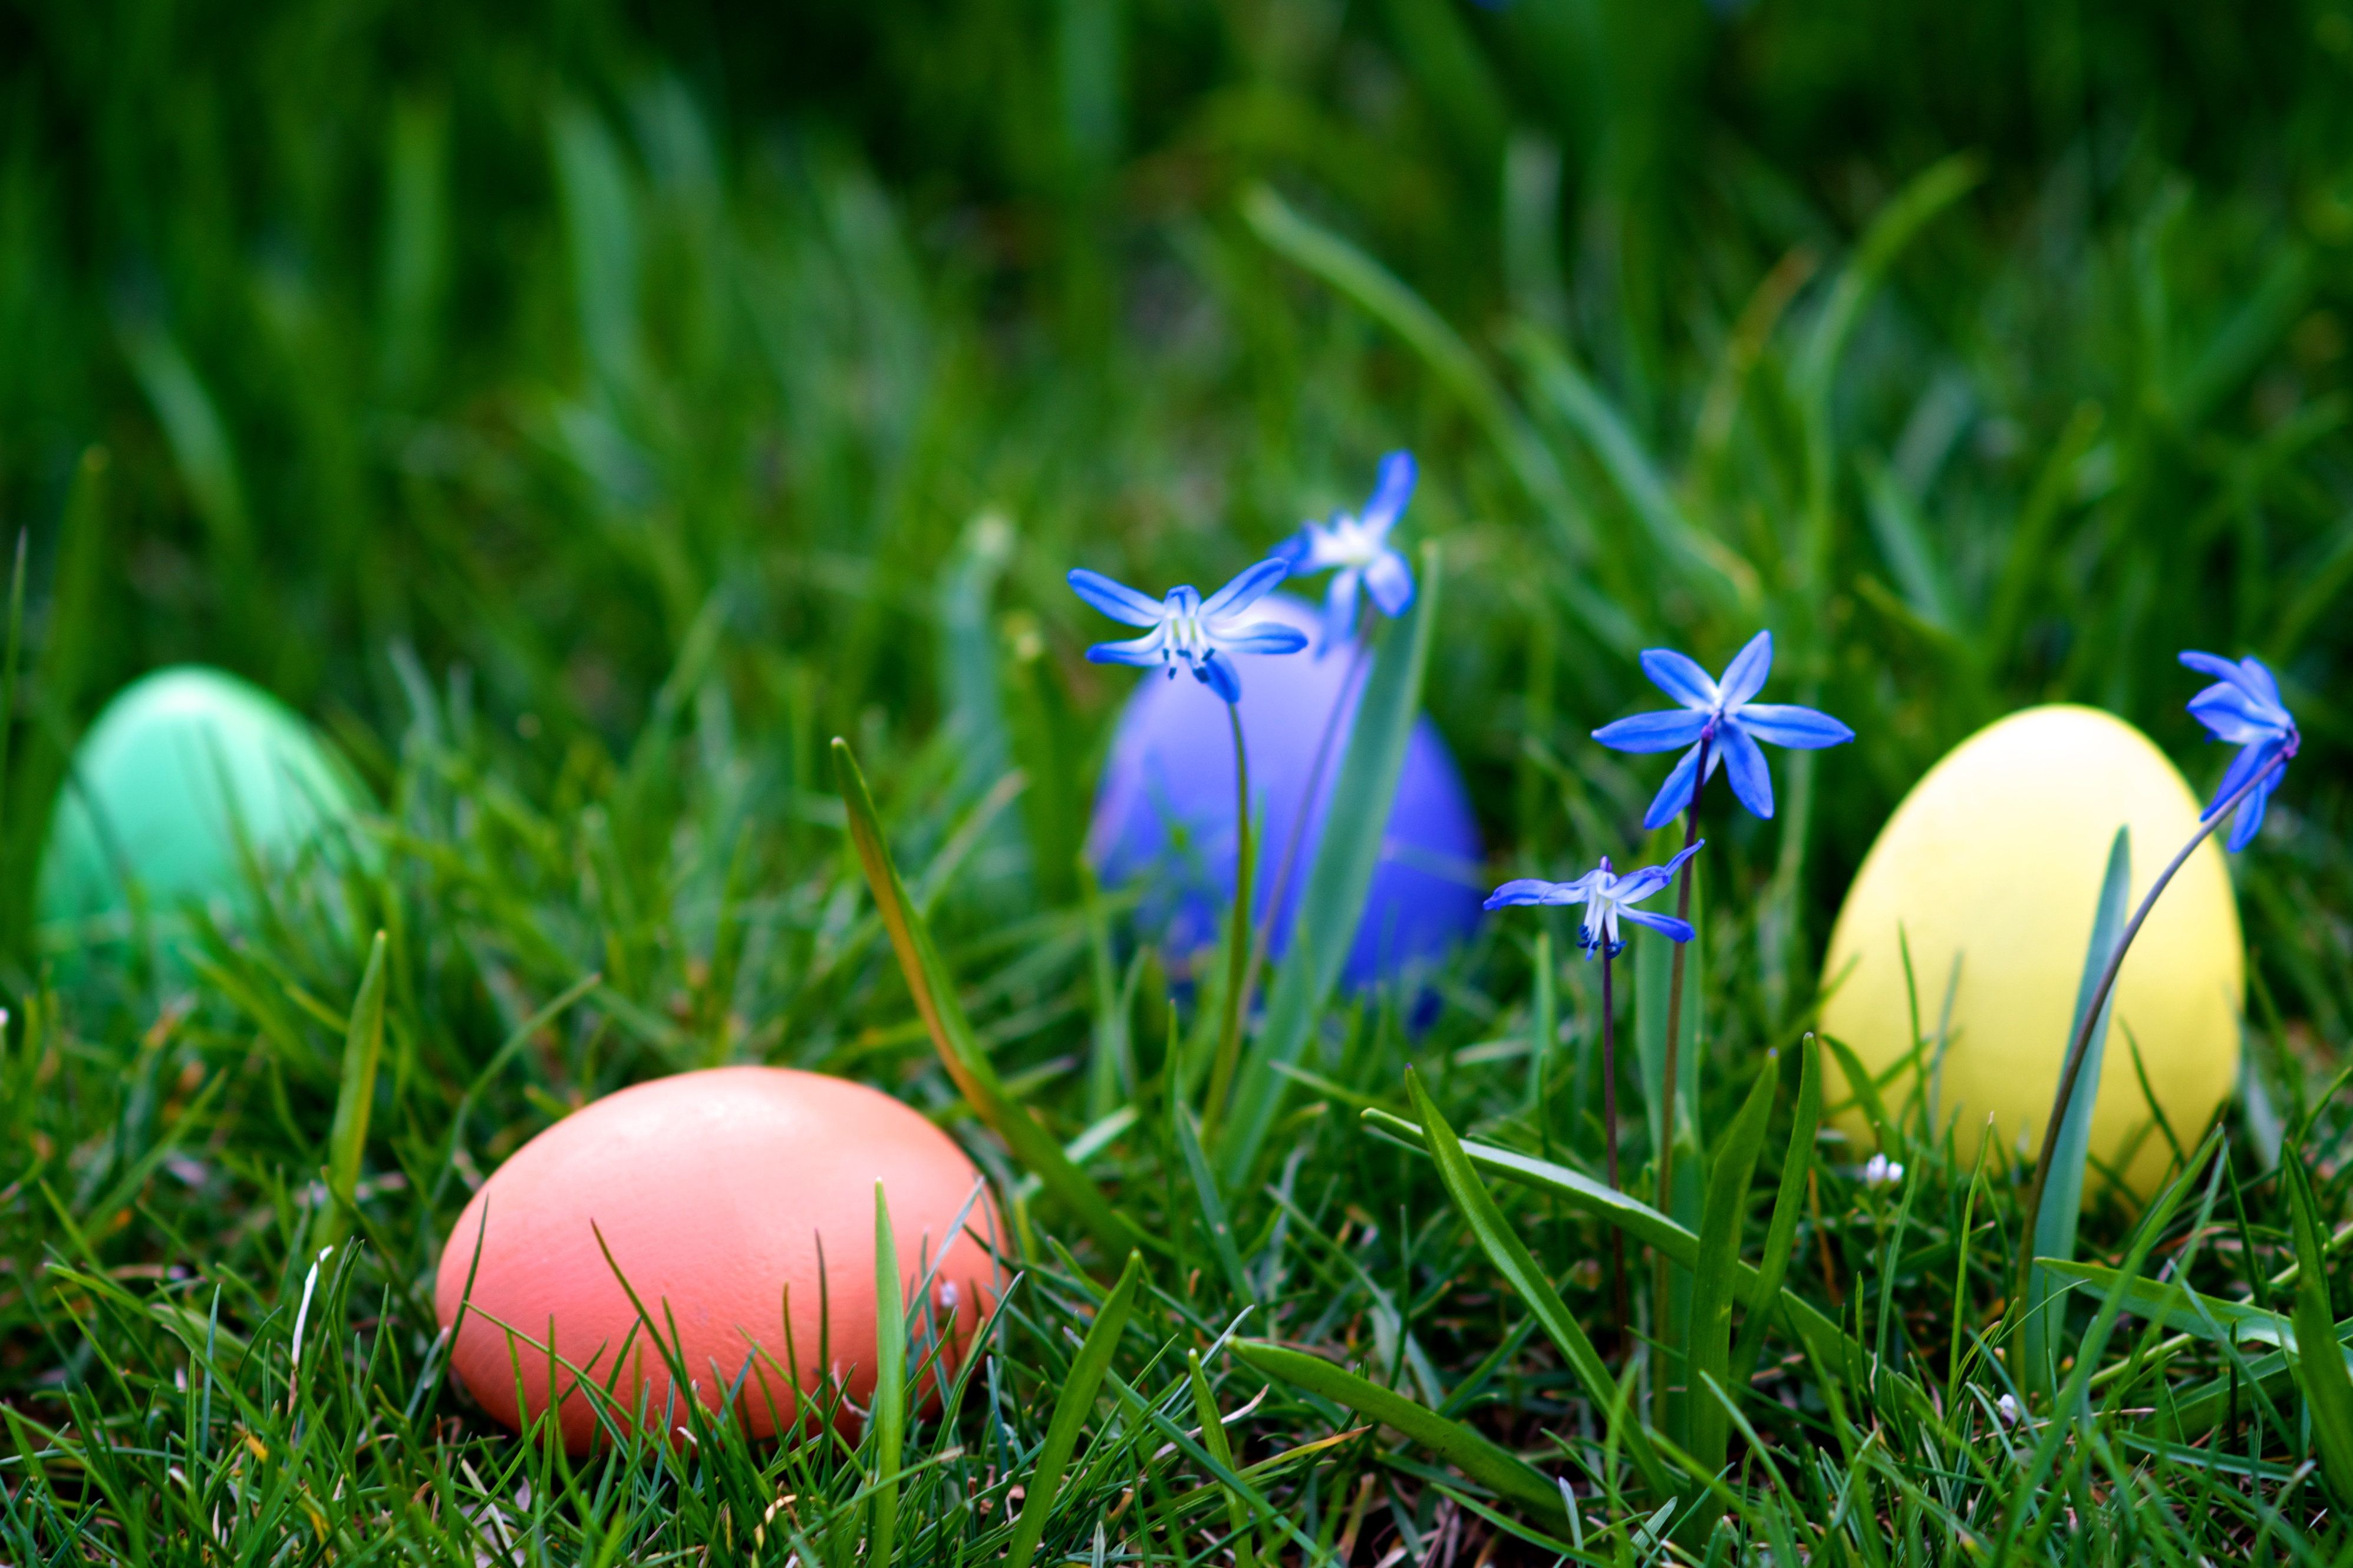 Colorful Easter eggs hidden among grass and flowers.